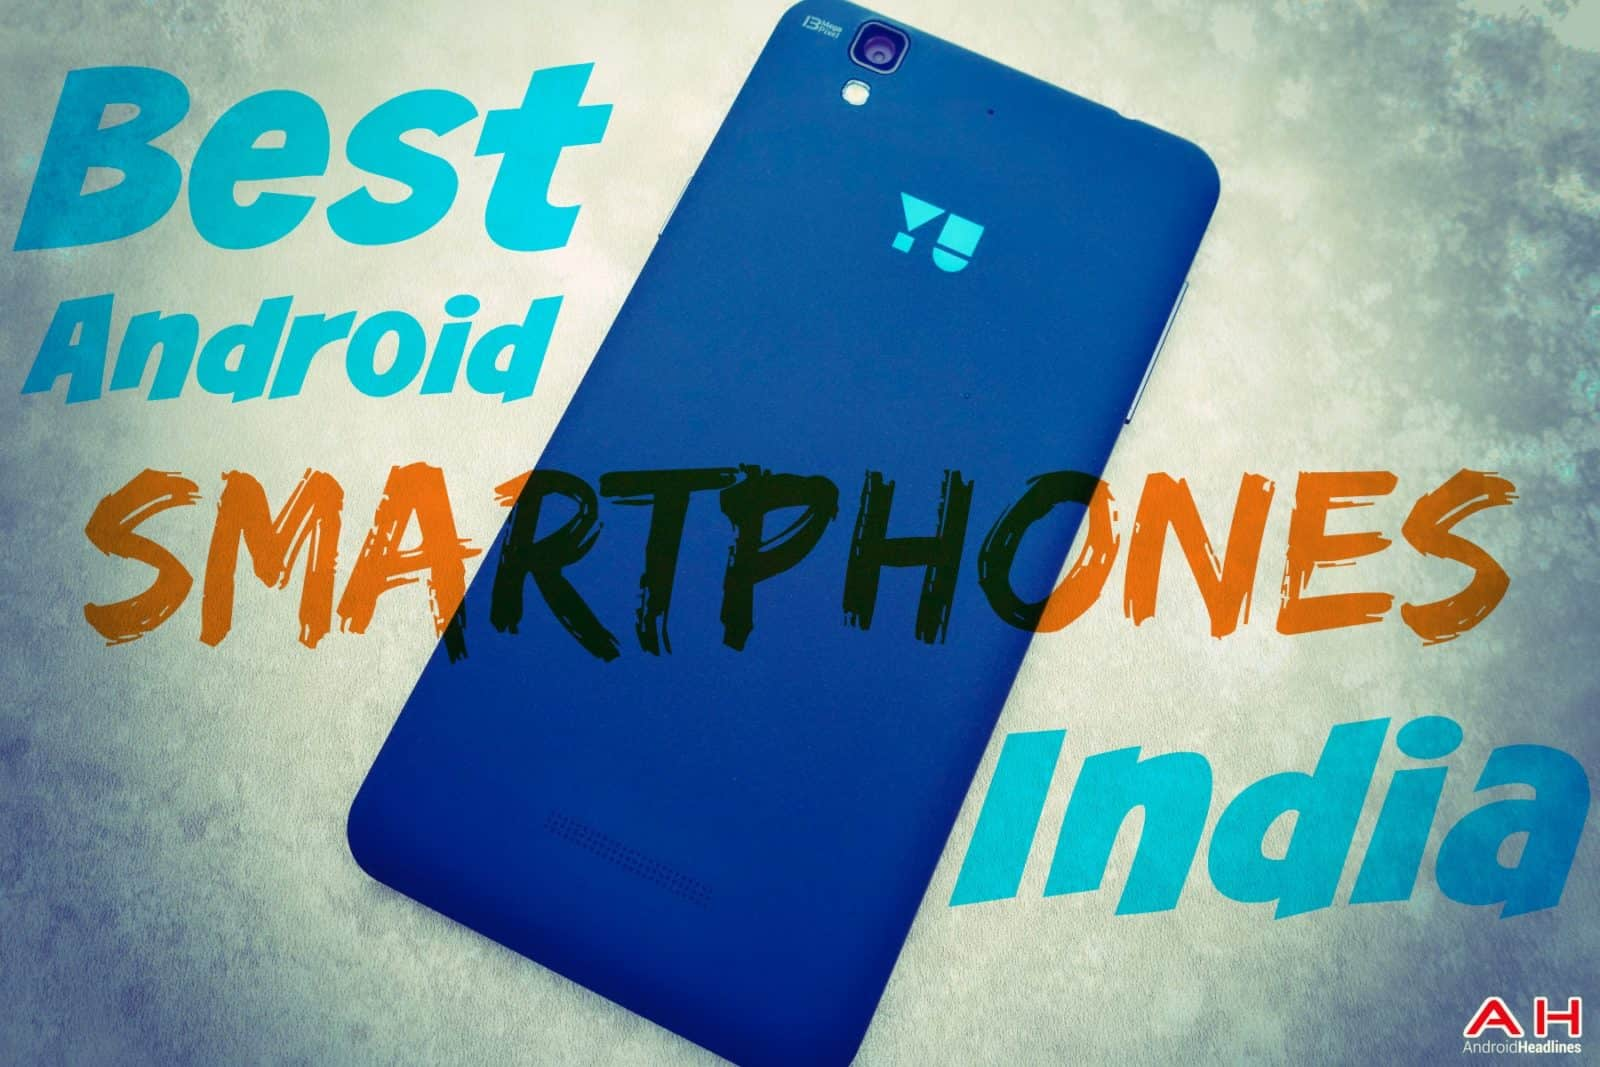 AH Best India Android Smartphones